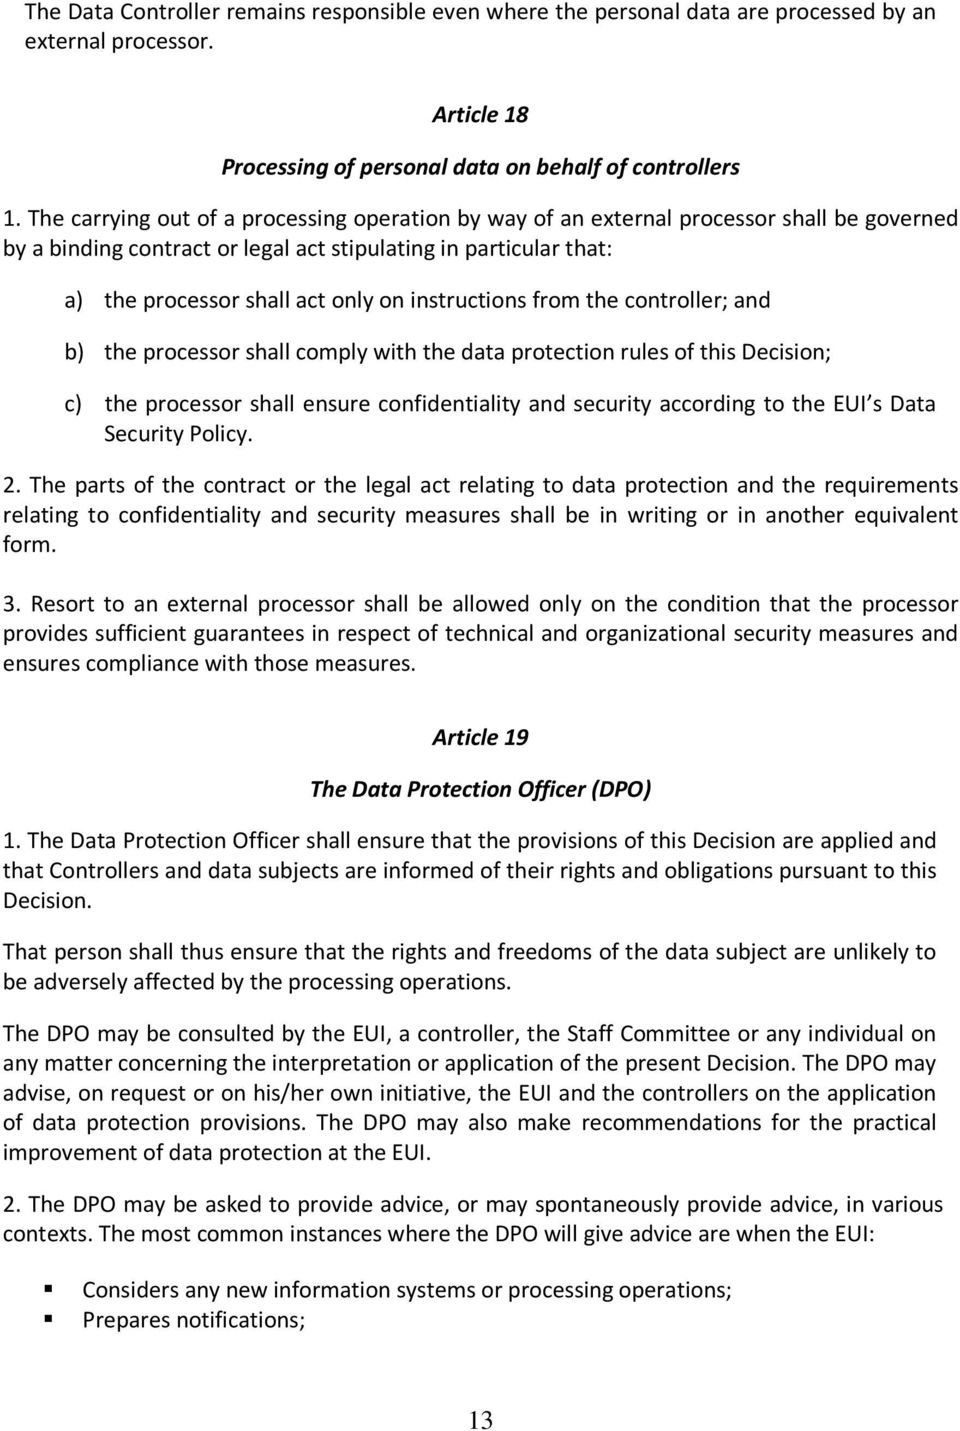 instructions from the controller; and b) the processor shall comply with the data protection rules of this Decision; c) the processor shall ensure confidentiality and security according to the EUI s